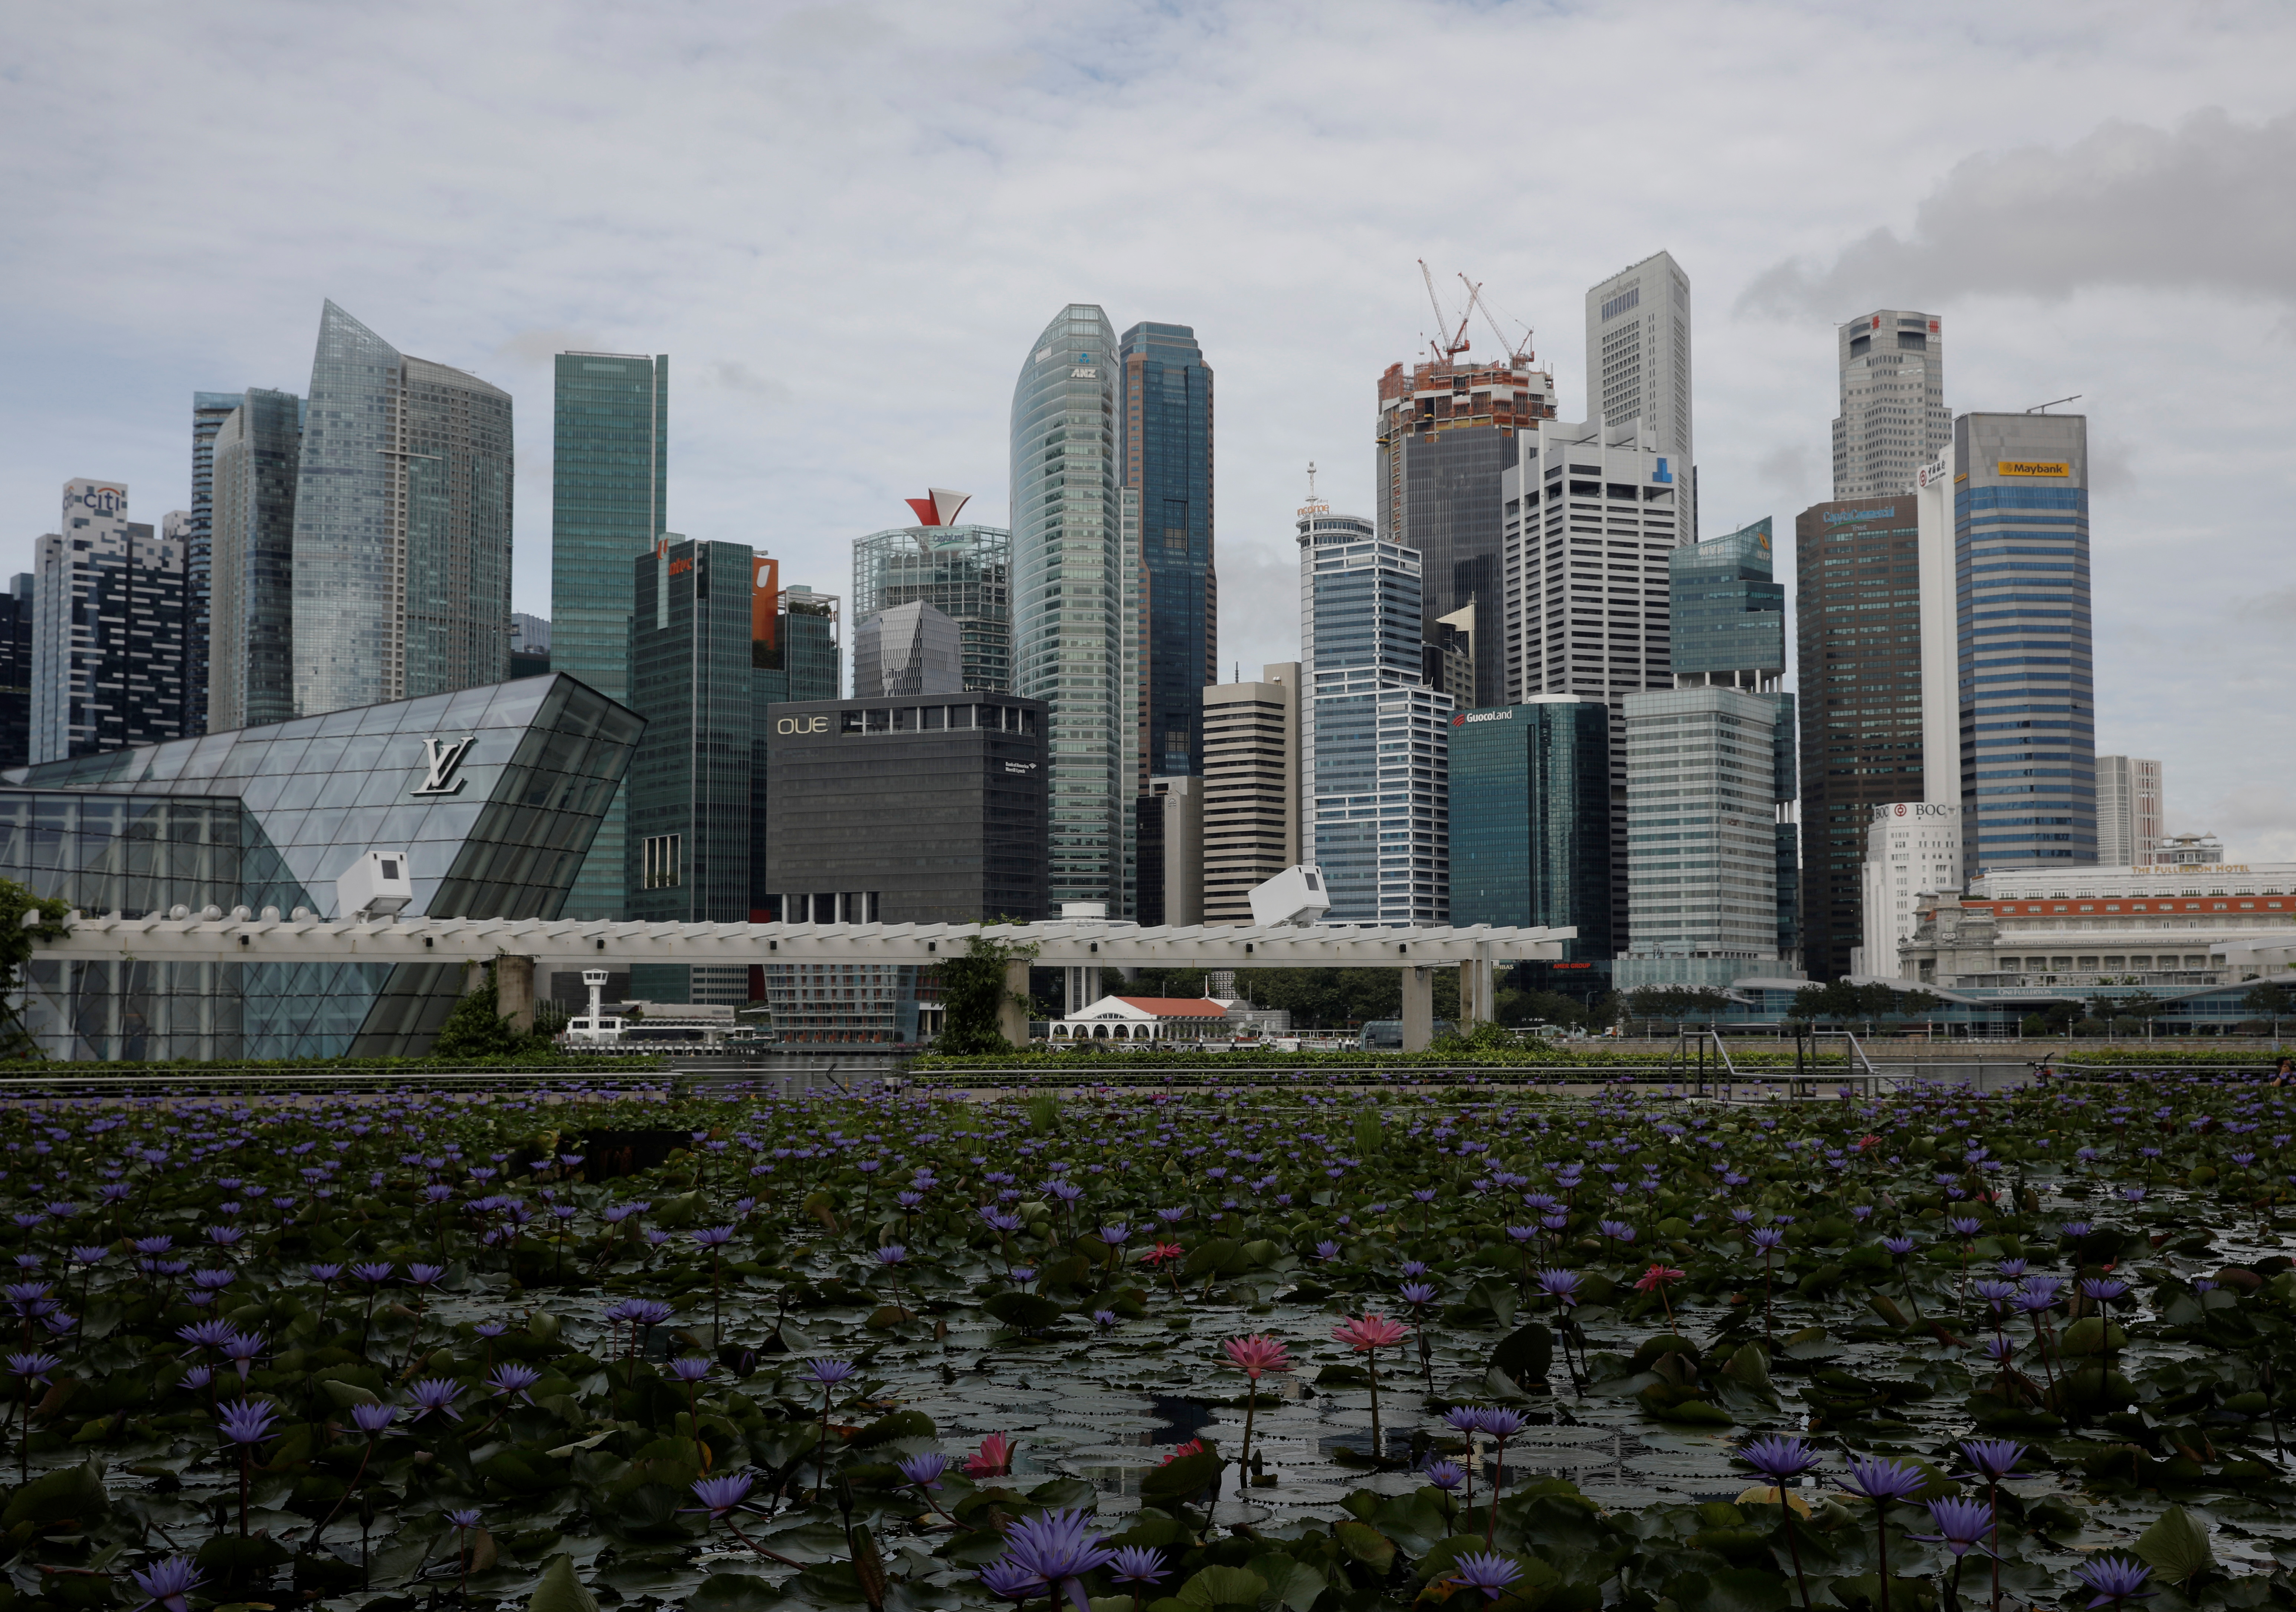 View of the central business district skyline in Singapore March 26, 2021. REUTERS/Edgar Su